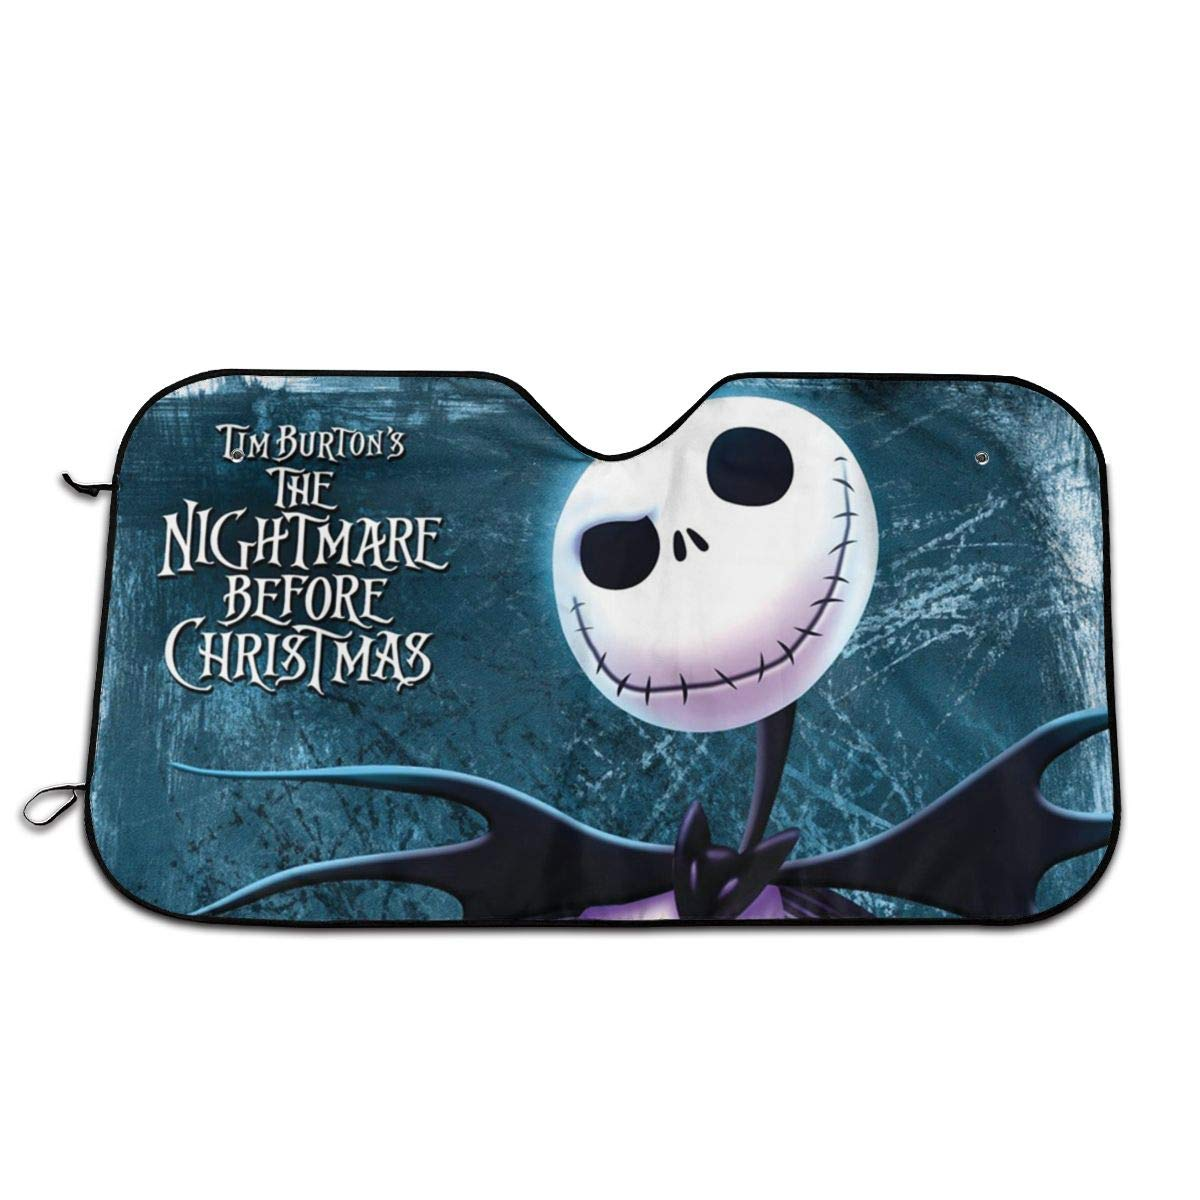 Hguftu5du The Nightmare Before Christmas Universal Windshield Sunshade 27.5x51 Inch Car Sun Visor Seat Sunscreen by Hguftu5du